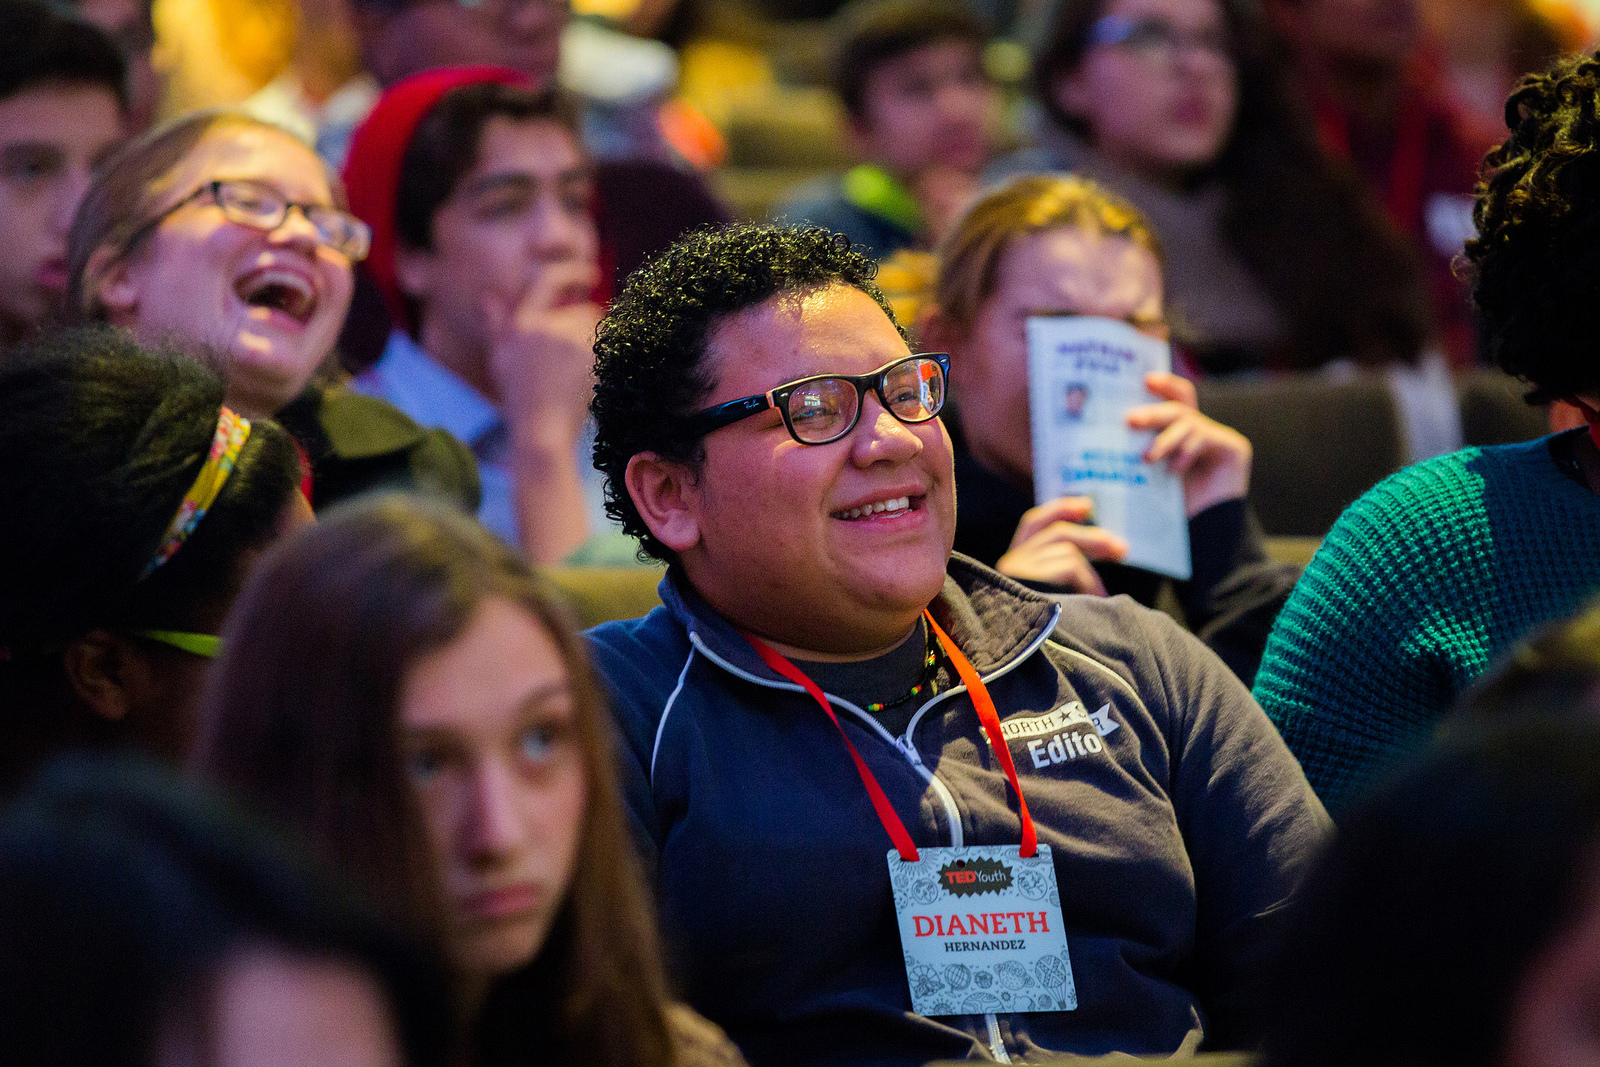 """Leeches for medicine? The TEDYouth 2014 audience reacts to a talk from the self-named """"Leech Guy,"""" Mark Siddall, a curator at the American Museum of Natural History. Photo: Ryan Lash/TED"""